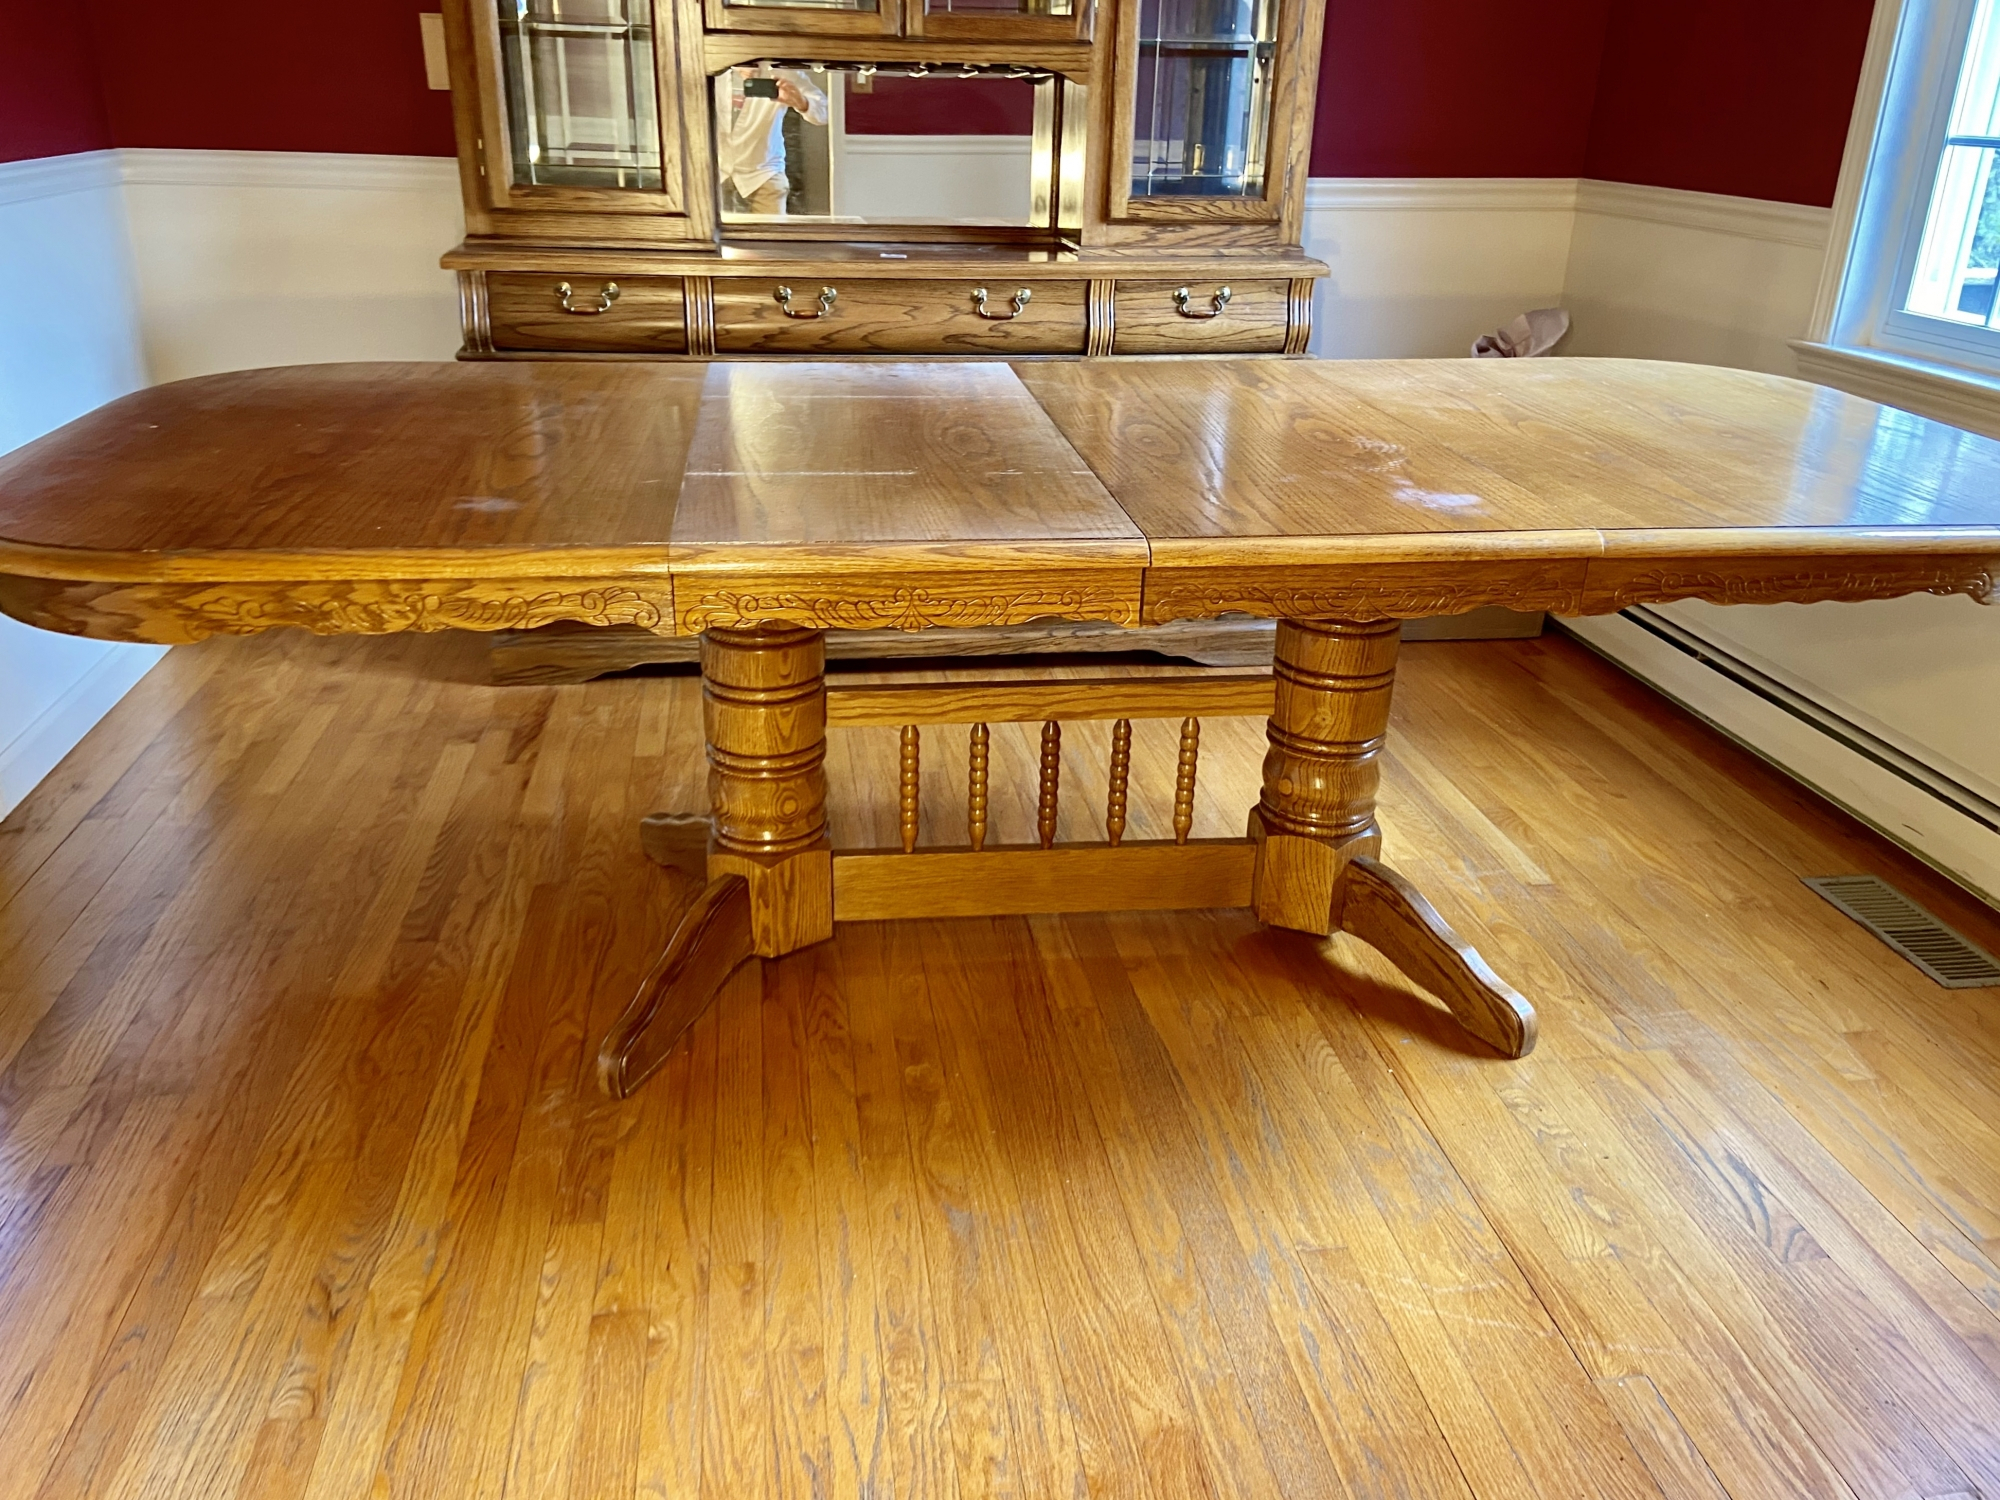 Trestle Style Oak Dining Table With Two Extension Leaves Intended For Most Recent Haddington 42'' Trestle Dining Tables (Photo 7 of 15)